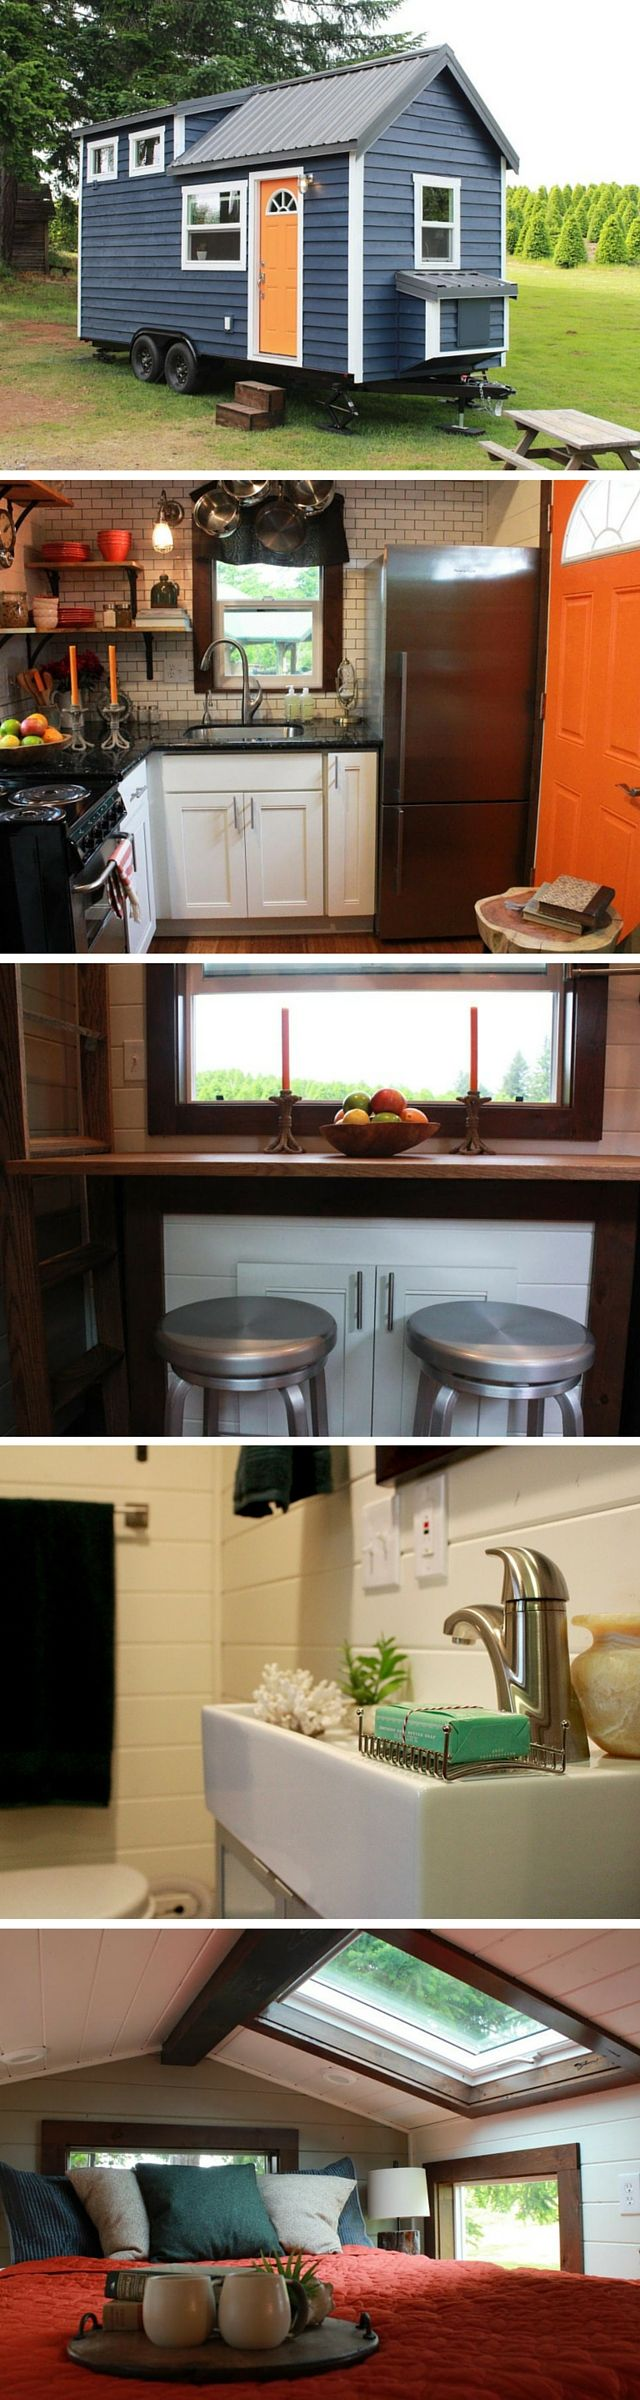 The Craftsman tiny house by Tiny Heirloom